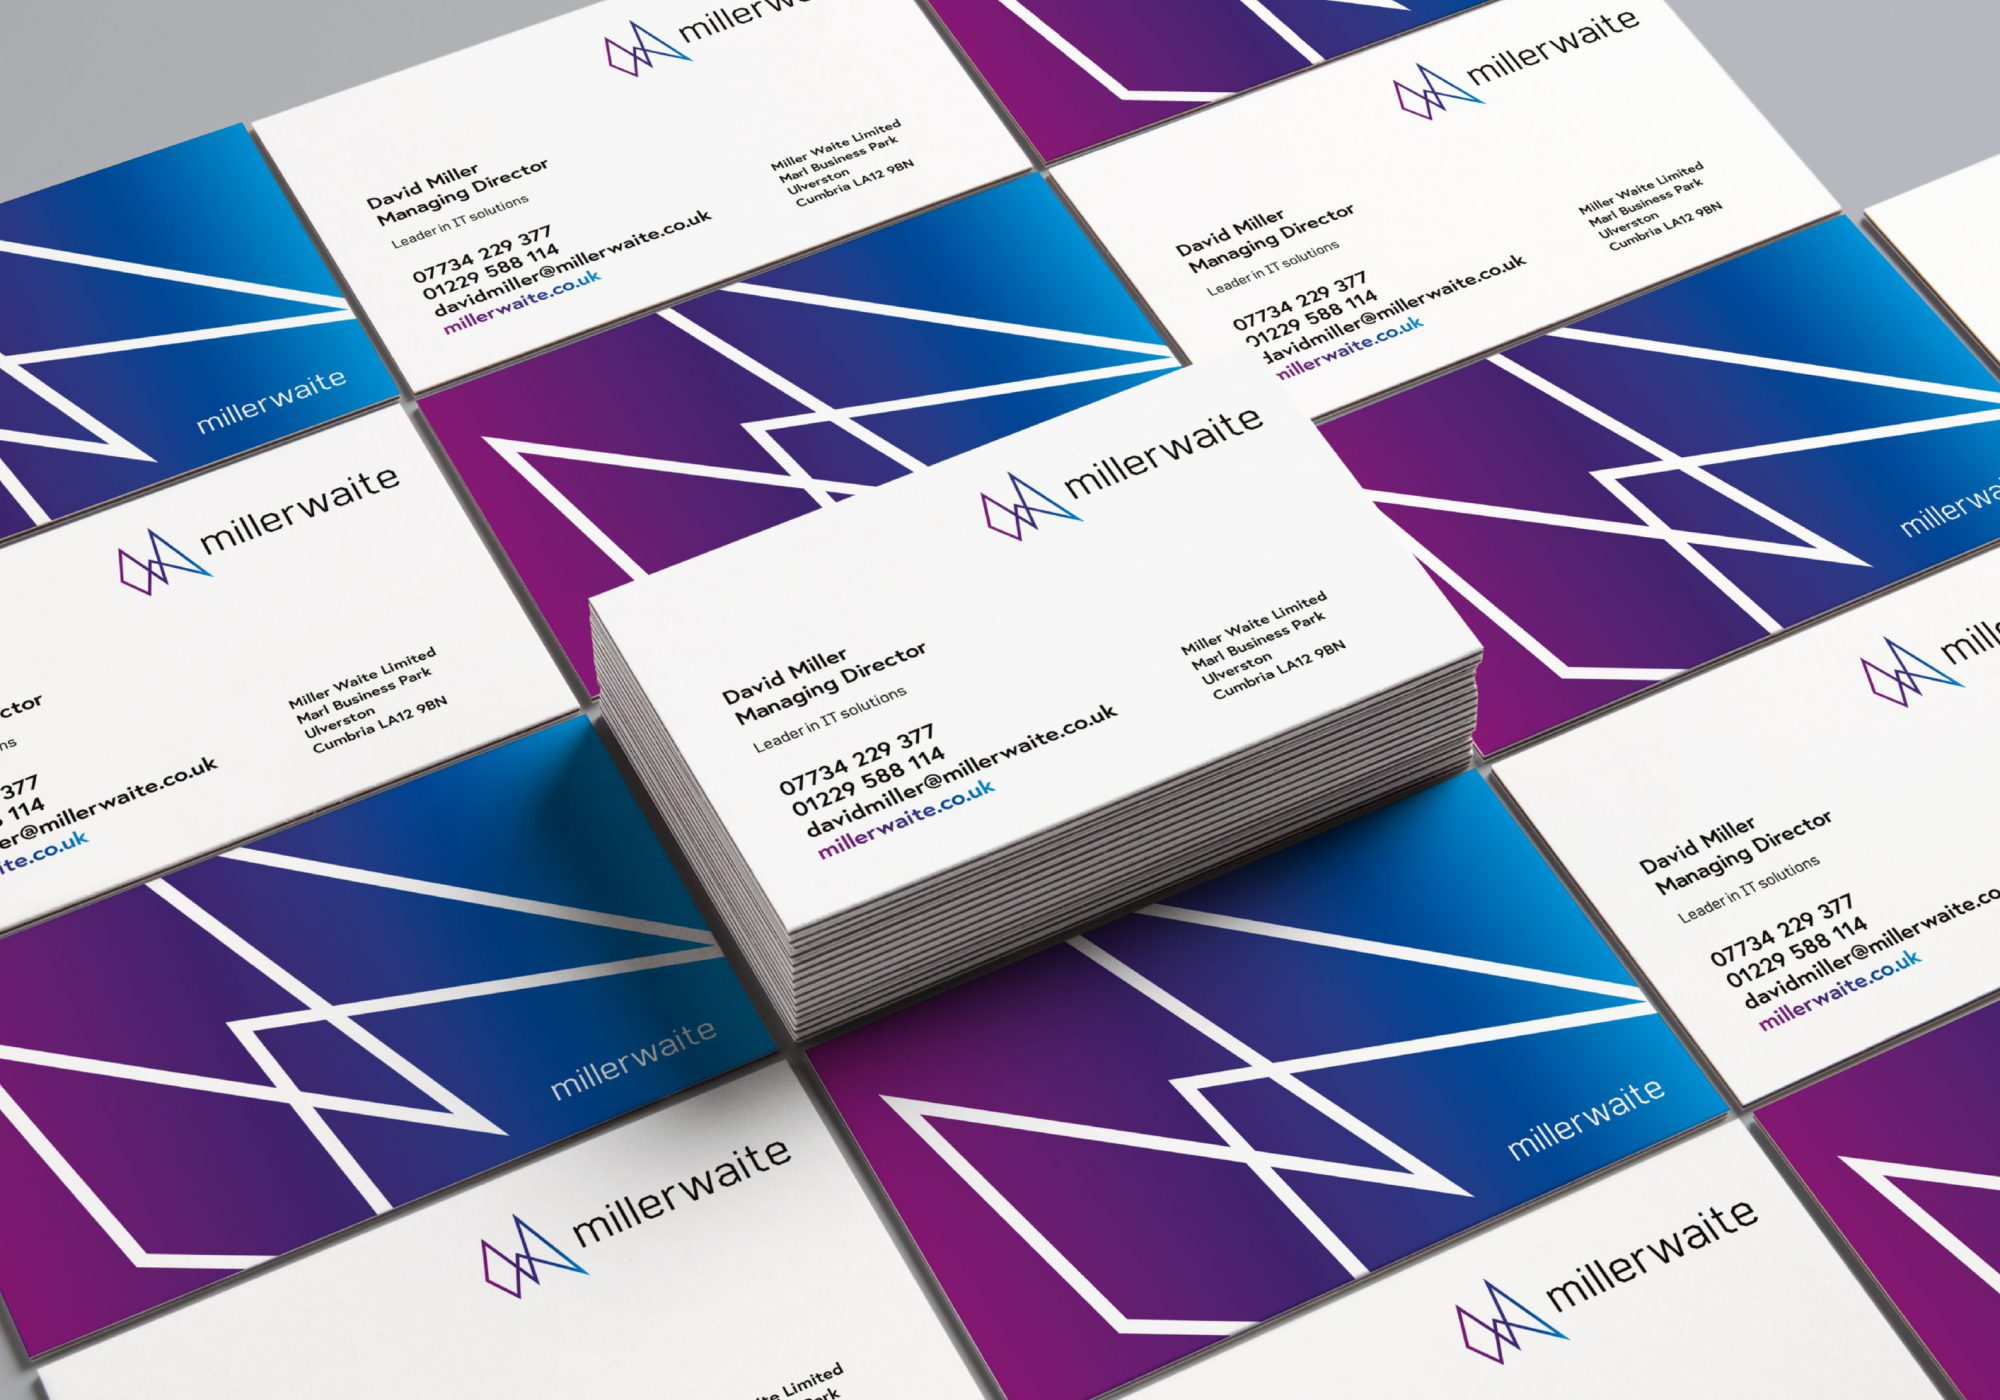 Miller Waite - Brand, Web Design, Print & Stationery In Shrewsbury